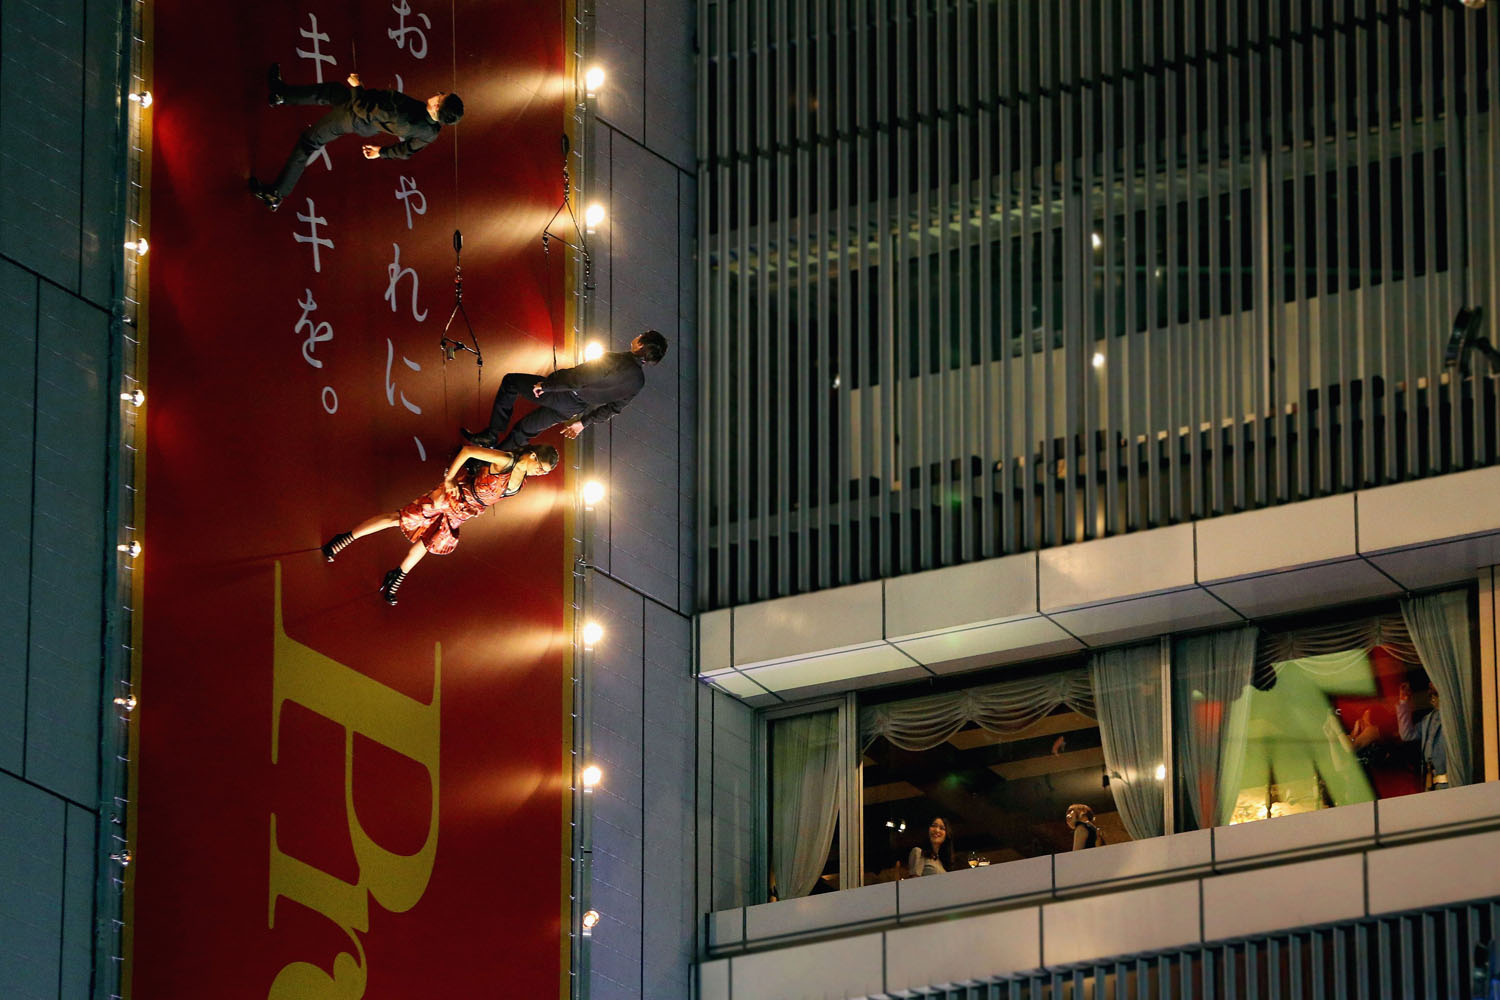 May 7, 2014. Models walk on the runway set on the wall of the Sony Building during the 'Sky Fashion Show' while people watch from the building at Tokyo's shopping district of Ginza on  in Tokyo, Japan.